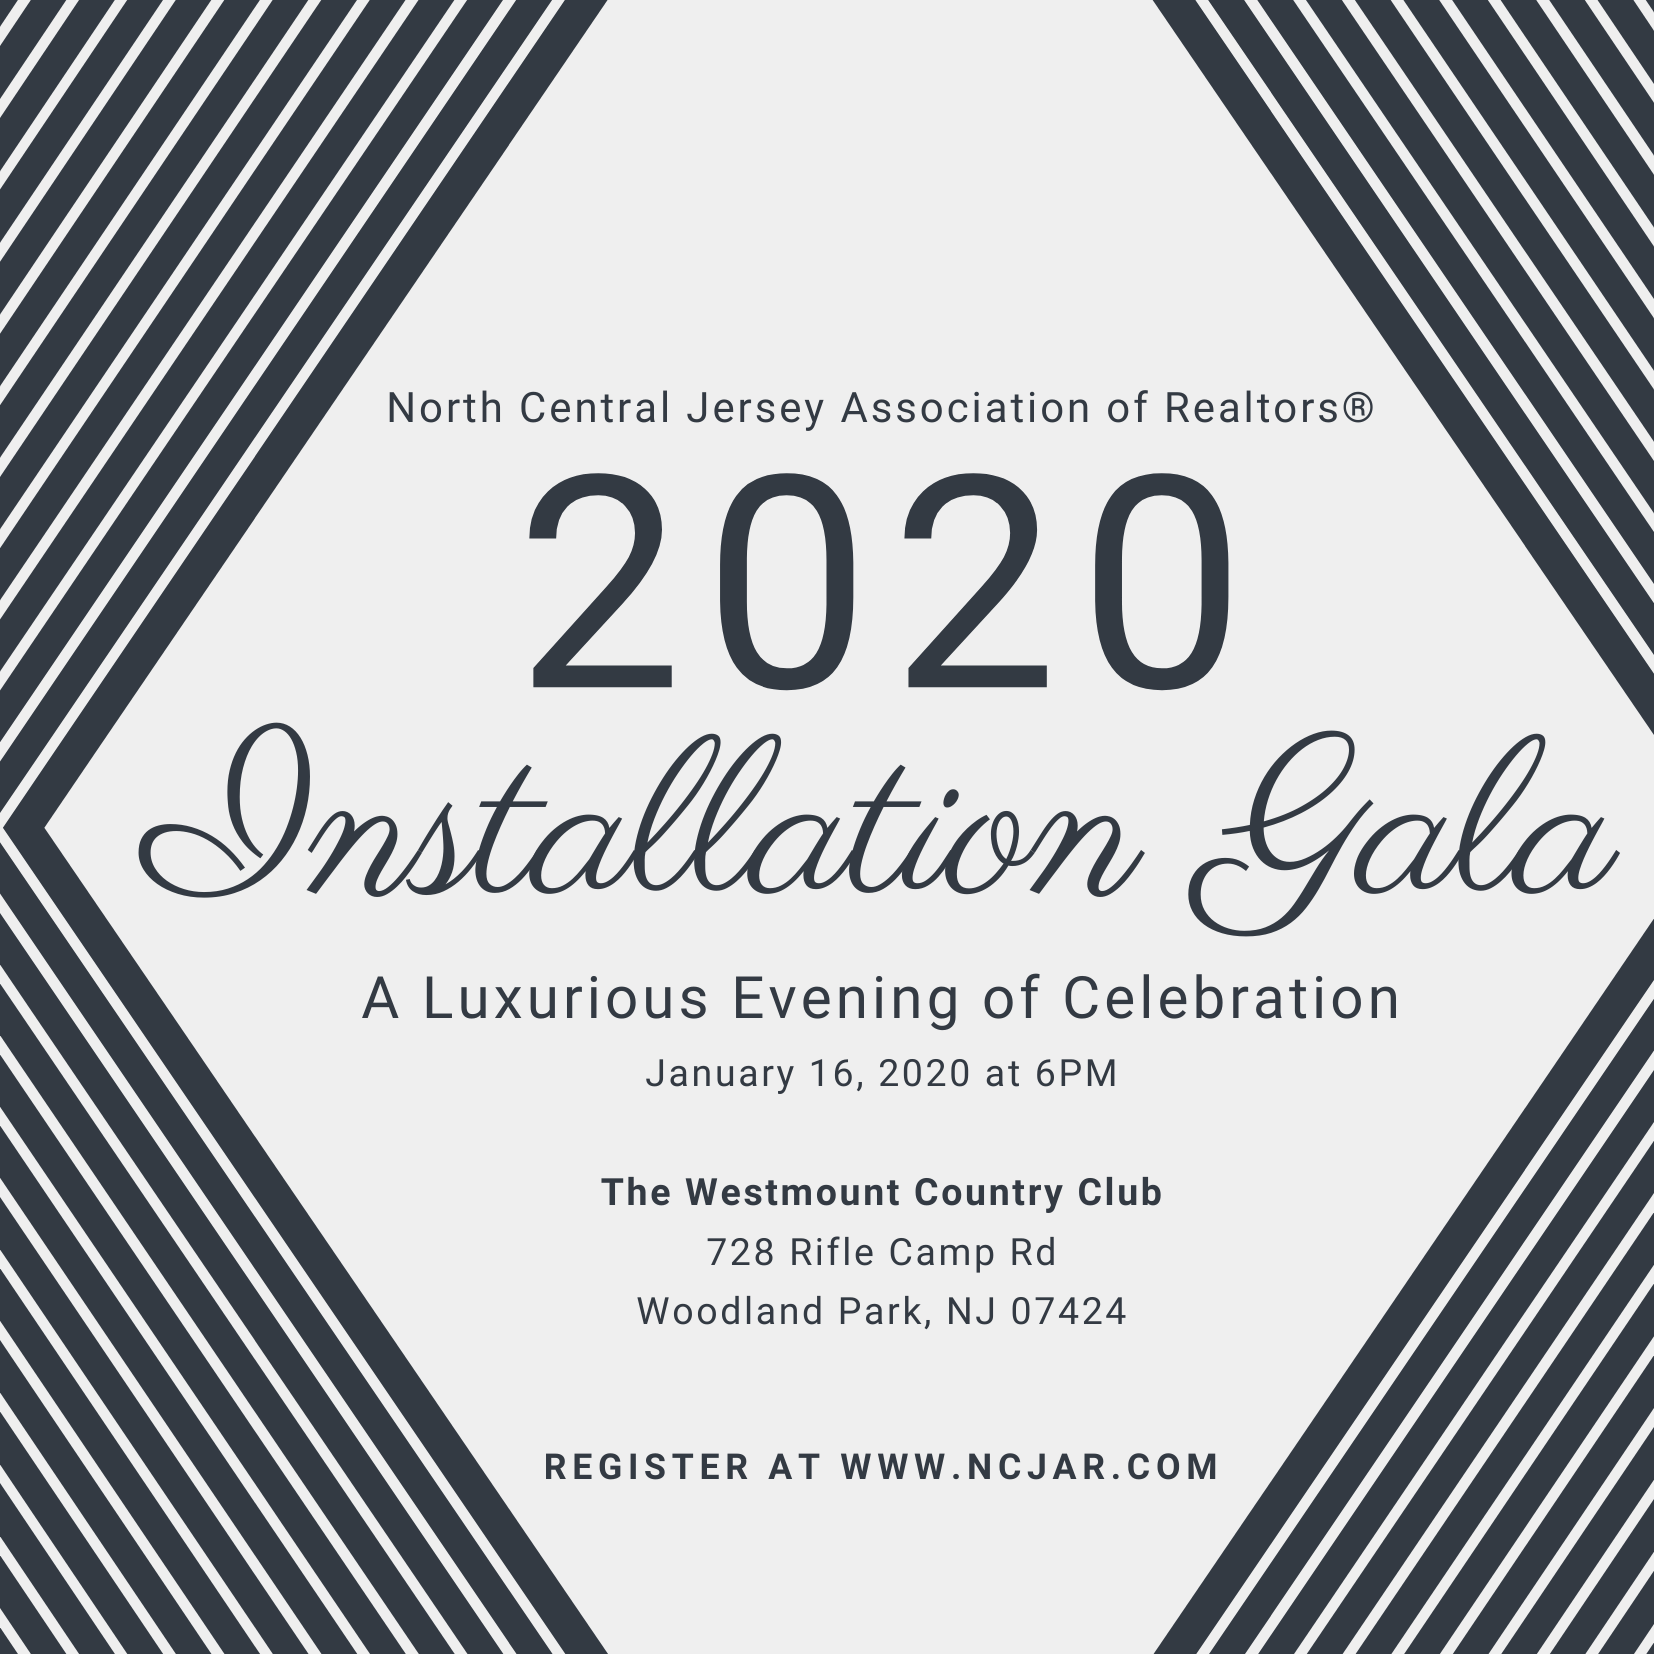 Join us for NCJAR's Installation Gala